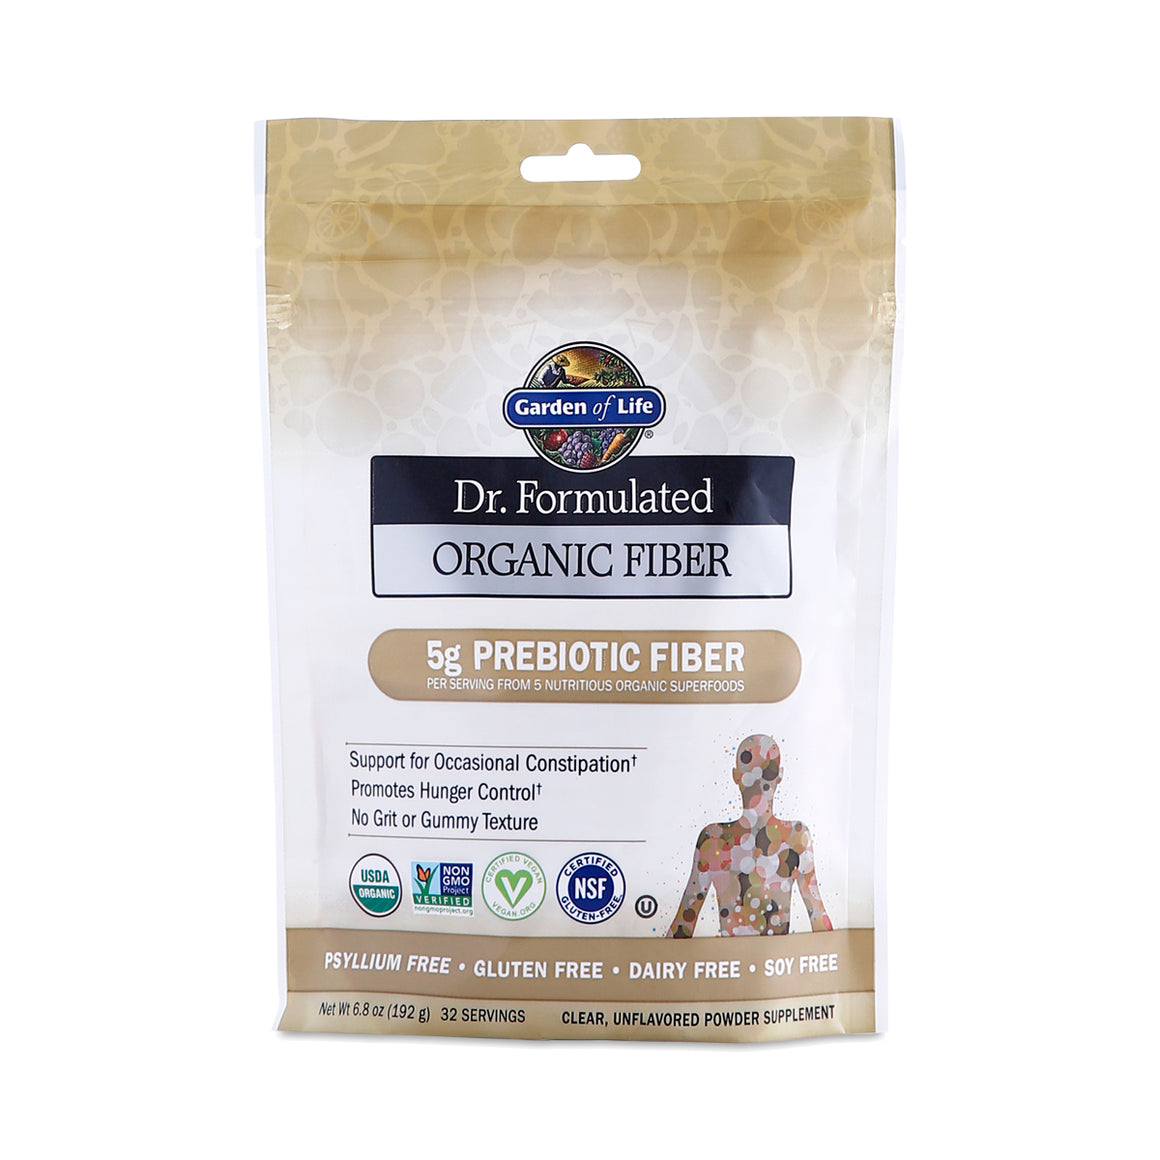 Garden of Life Prebiotic Fiber